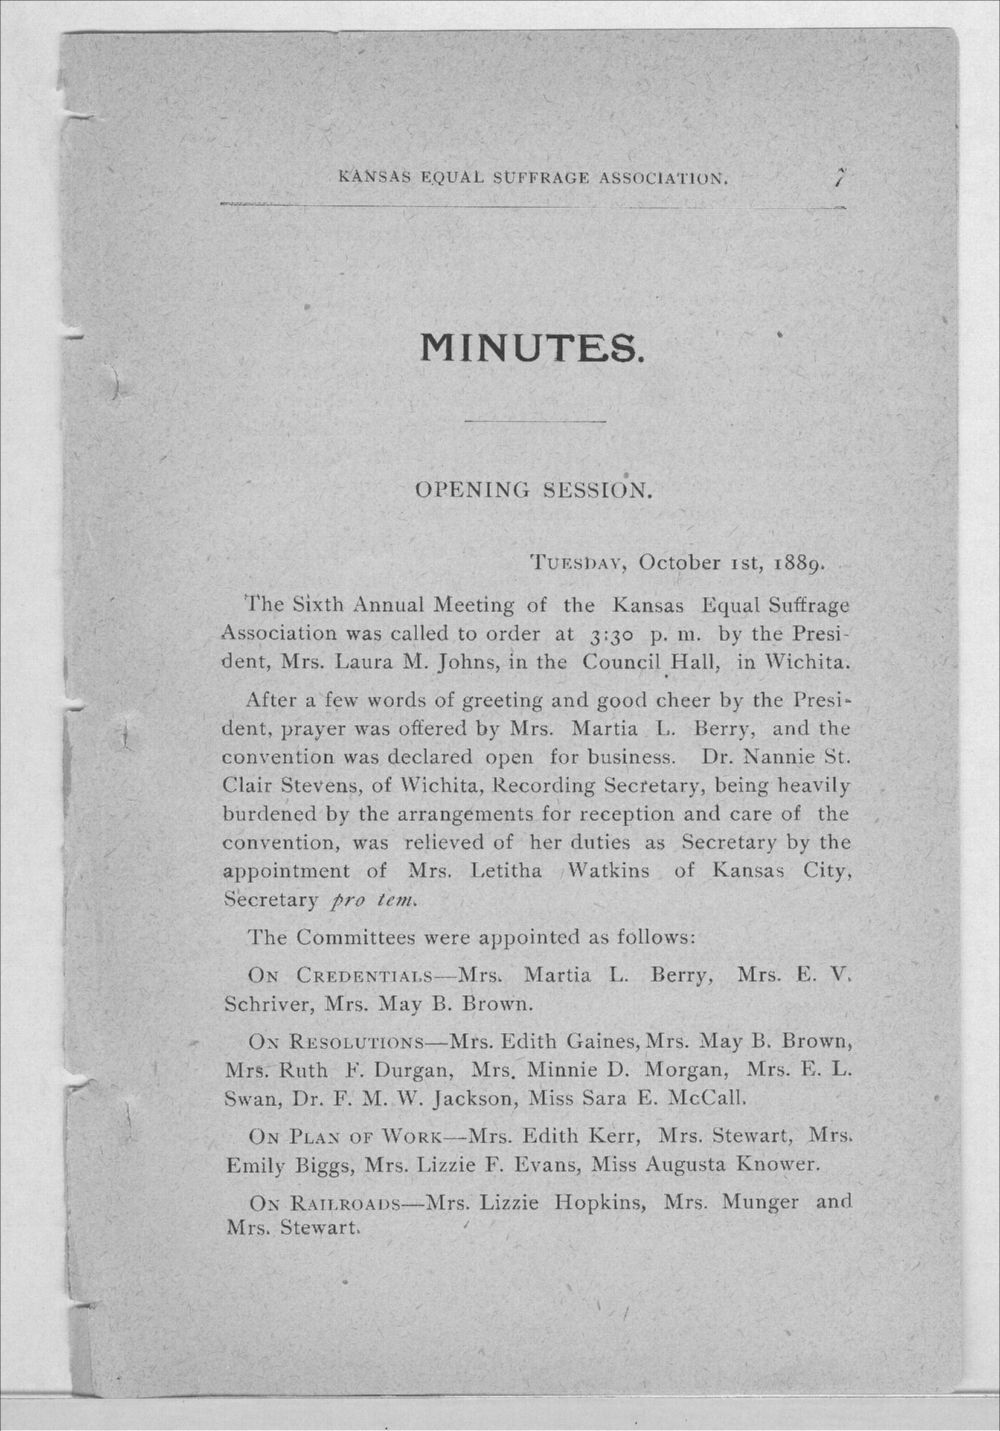 Minutes of the Kansas Equal Suffrage Association at the sixth annual meeting in 1889 - 7